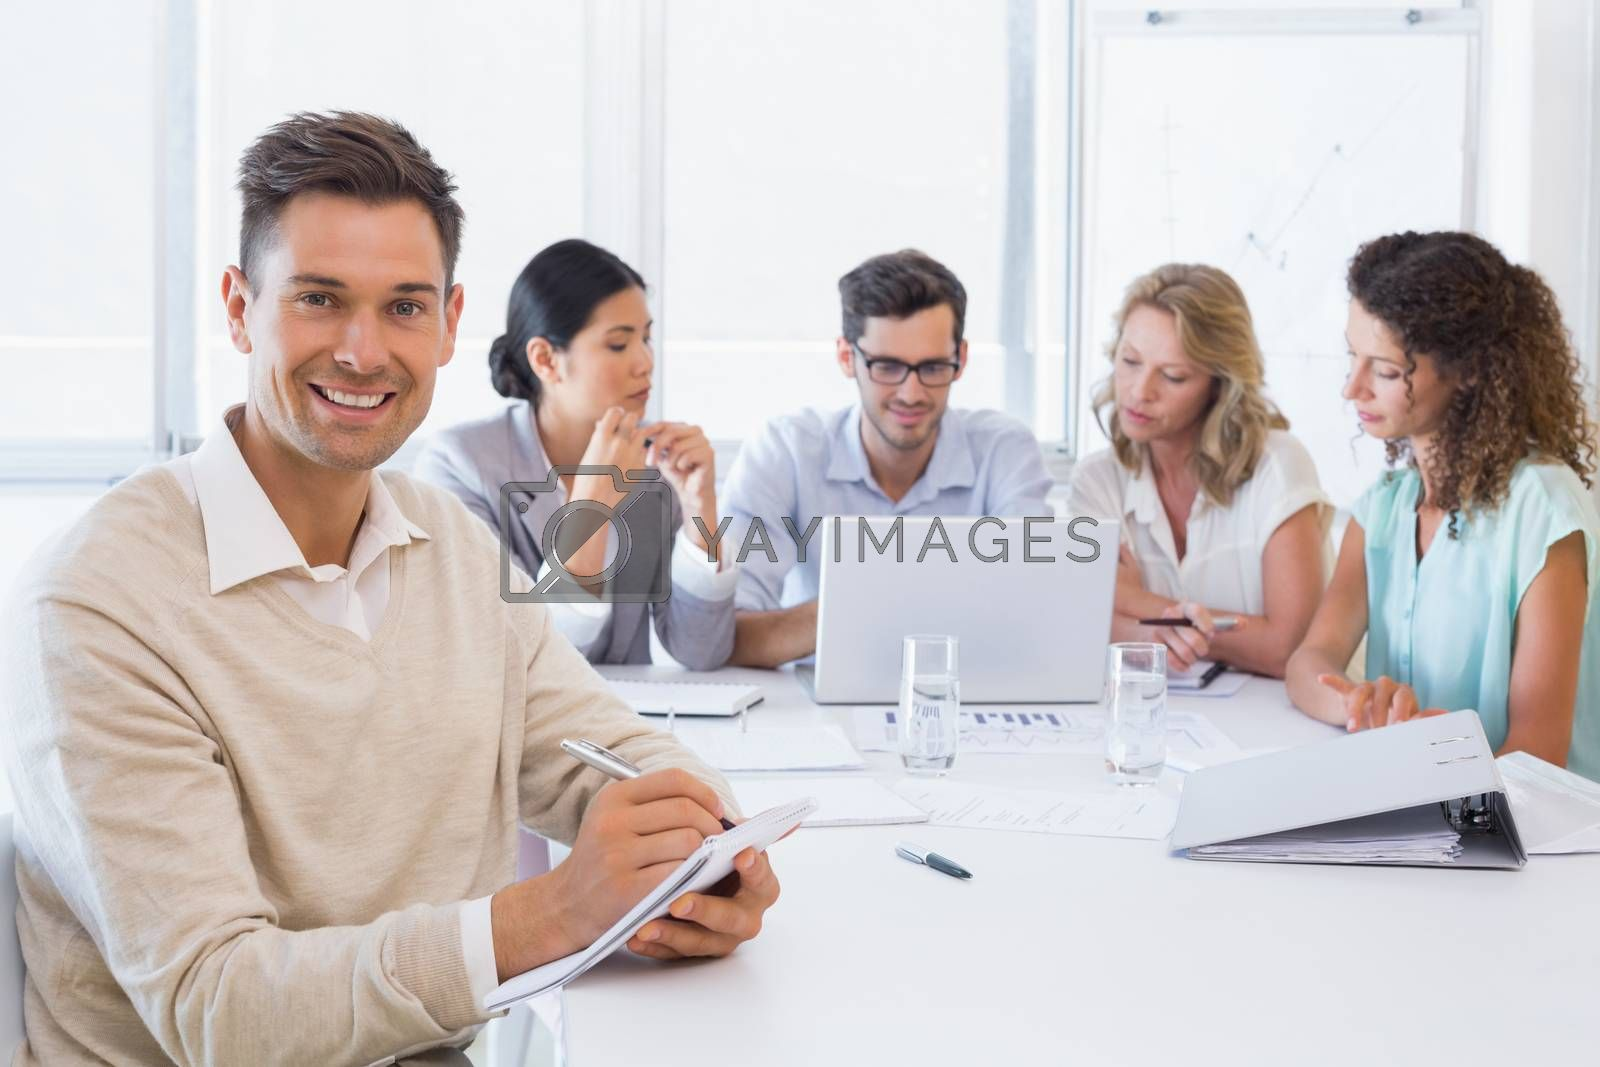 Royalty free image of Casual businessman taking notes during meeting by Wavebreakmedia